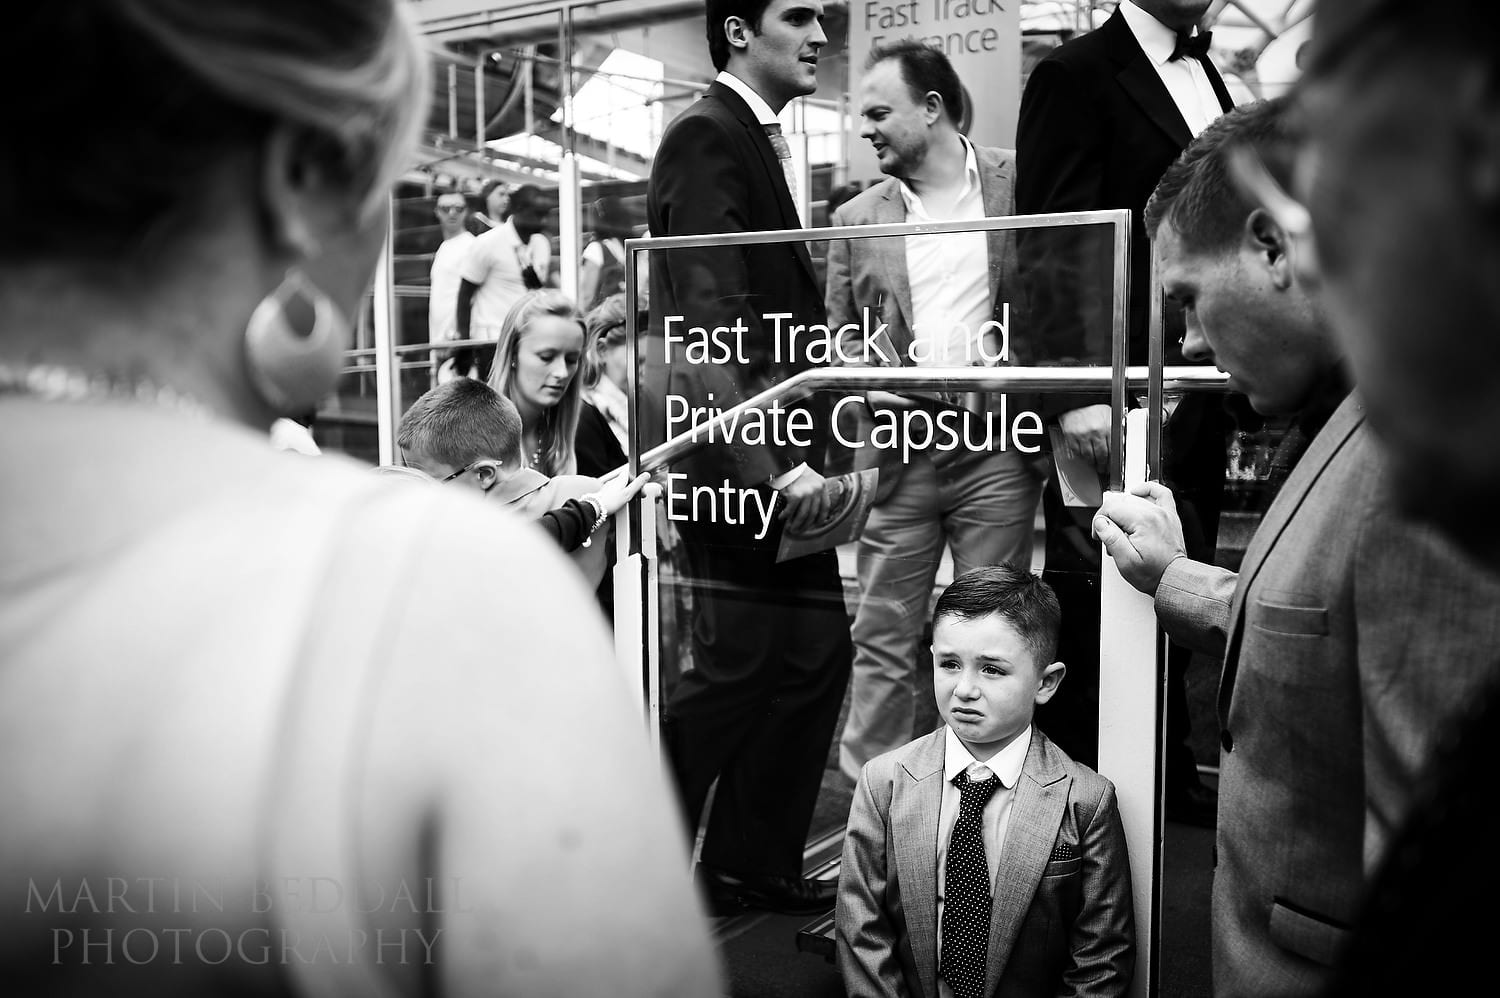 Wedding guests queue to board the London Eye